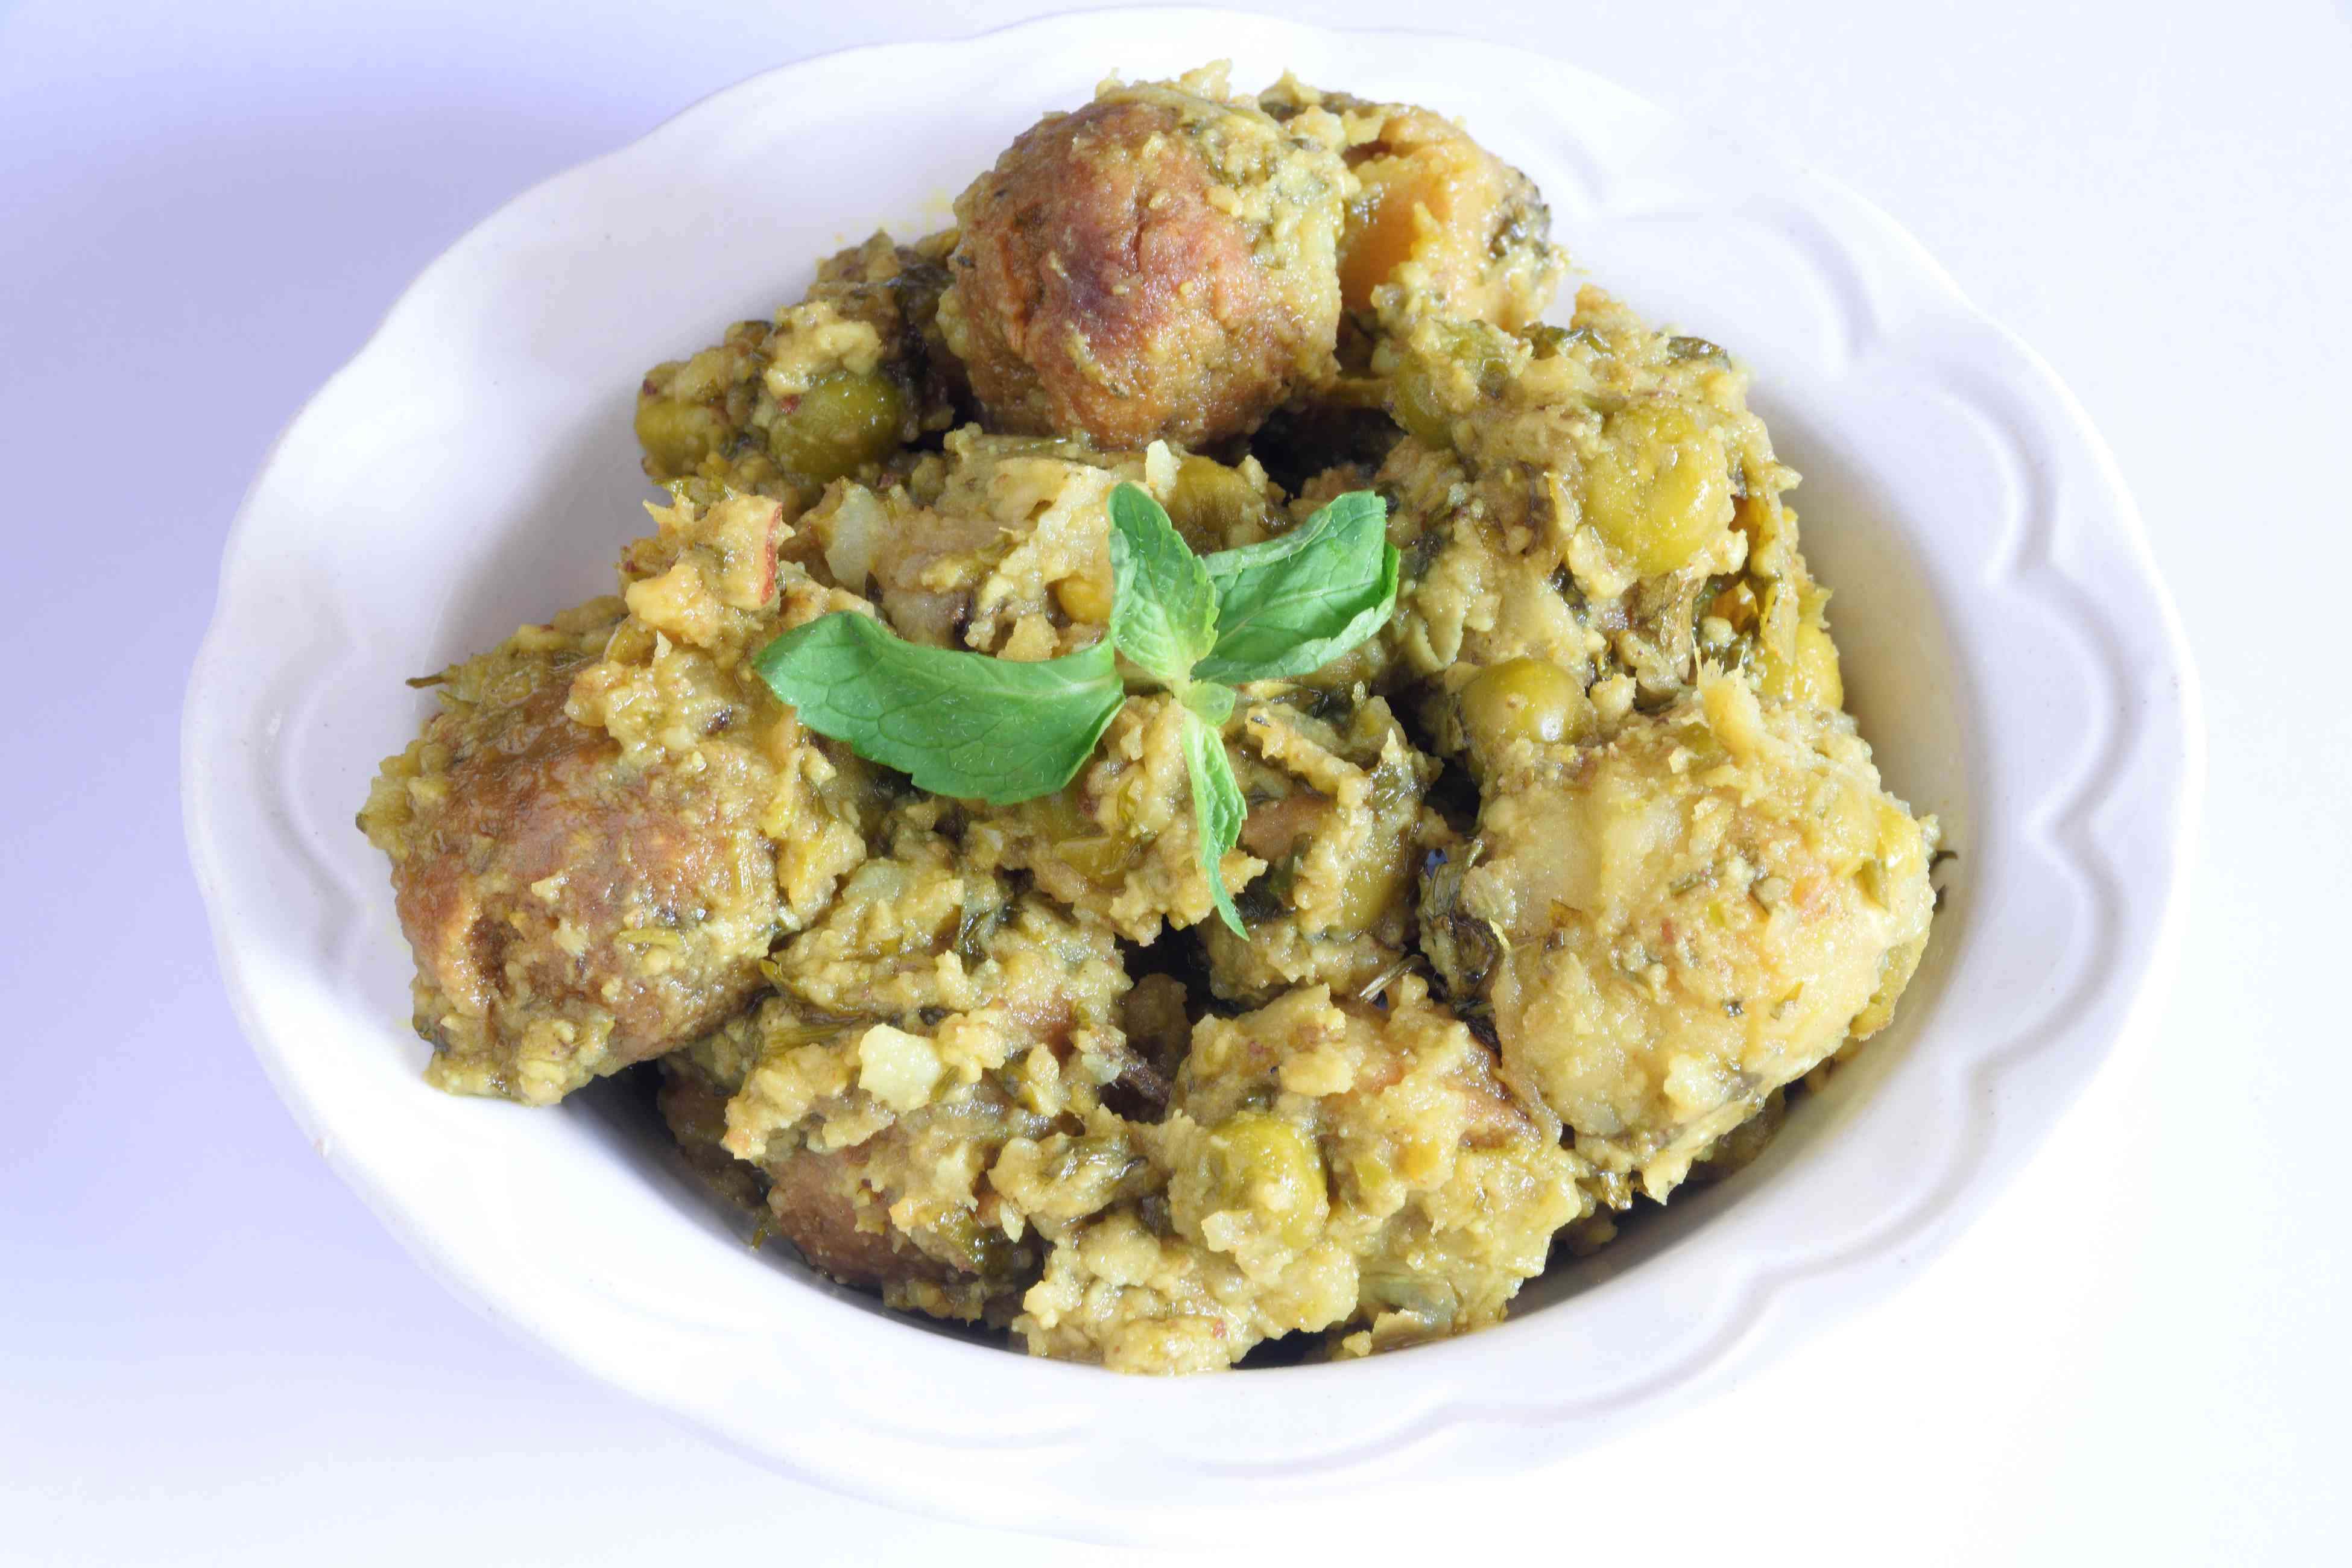 Undhiyu, a traditional extremely popular vegetarian (vegan) dish from state of Gujarat in India